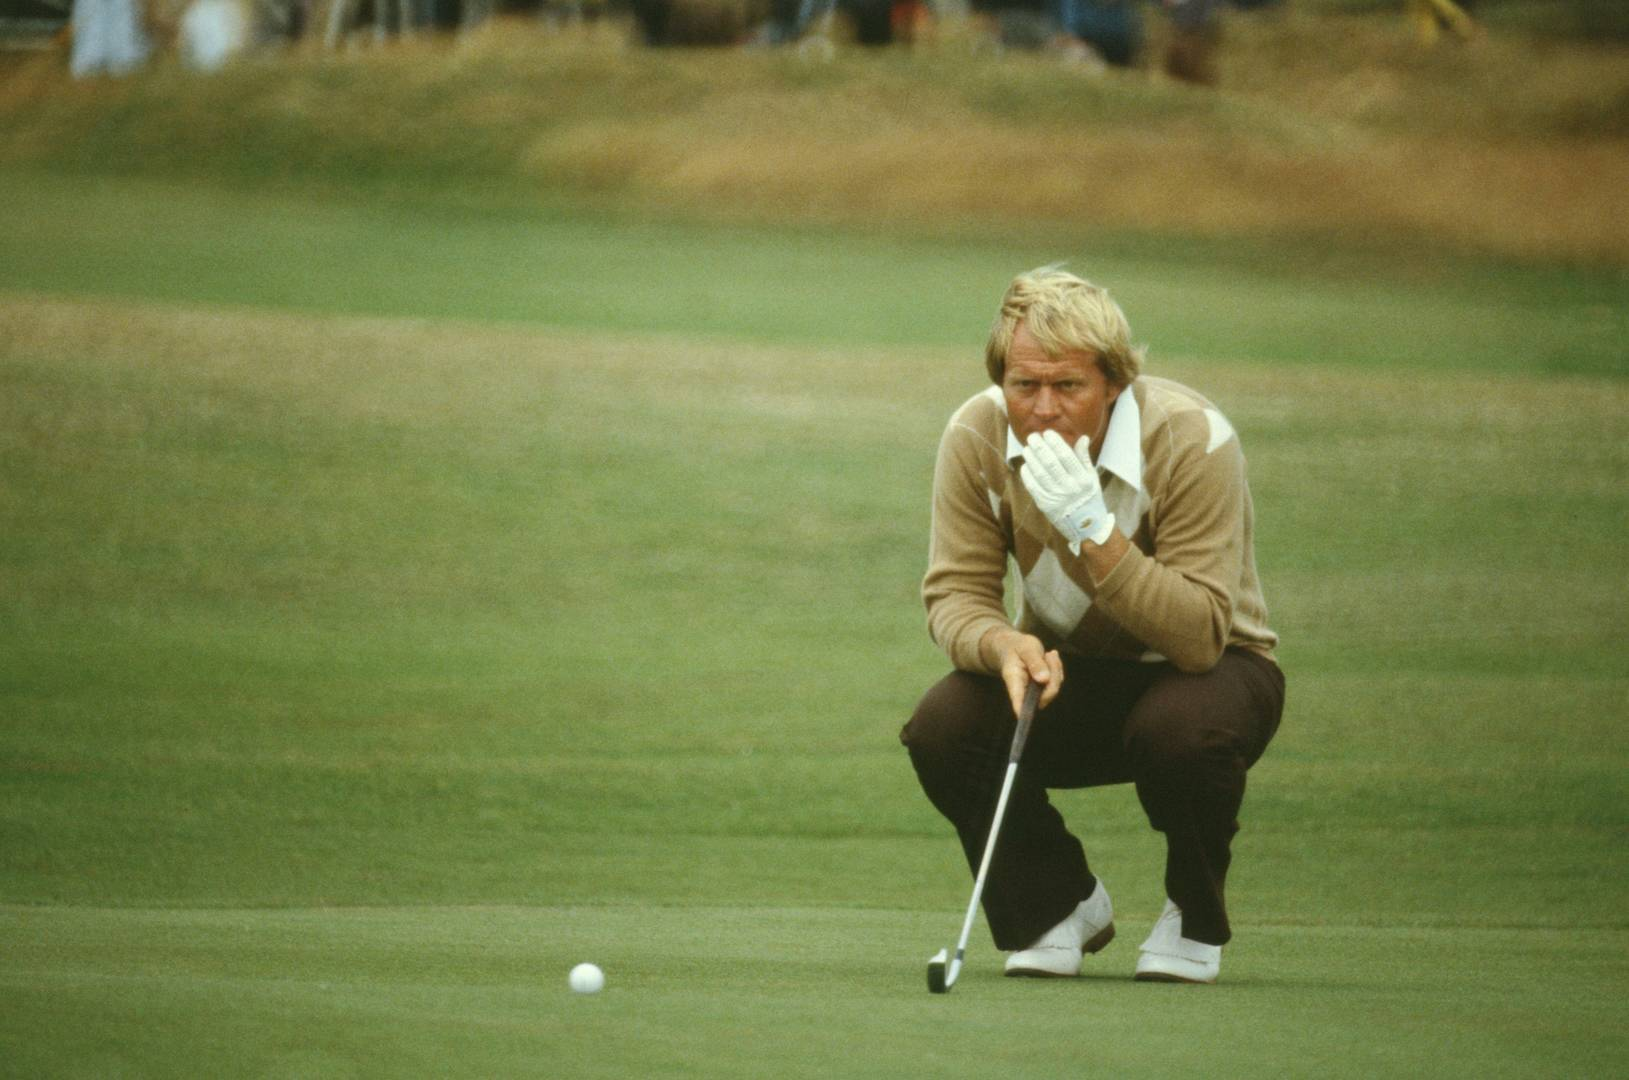 Jack Nicklaus at The Open in 1979